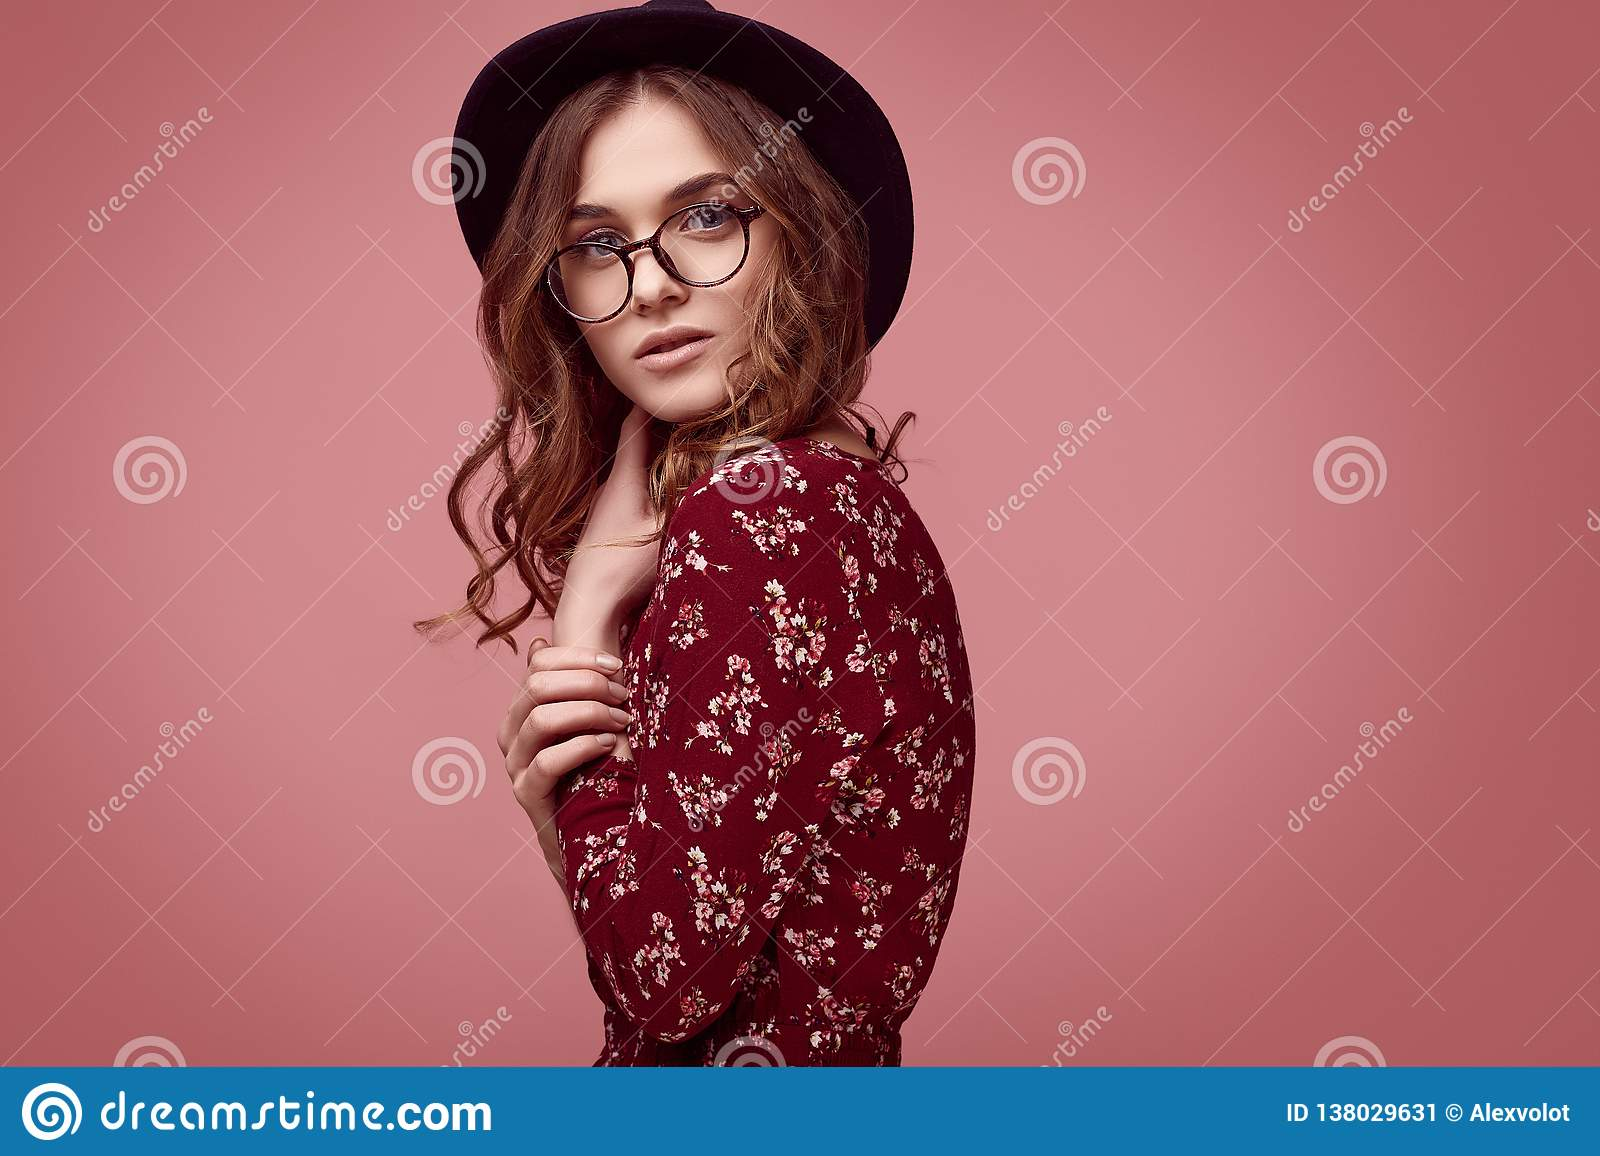 36968e6d28249 Sensual portrait of elegant glamor hipster girl in red fashion dress, black  hat and glasses posing on colorful pink background in studio